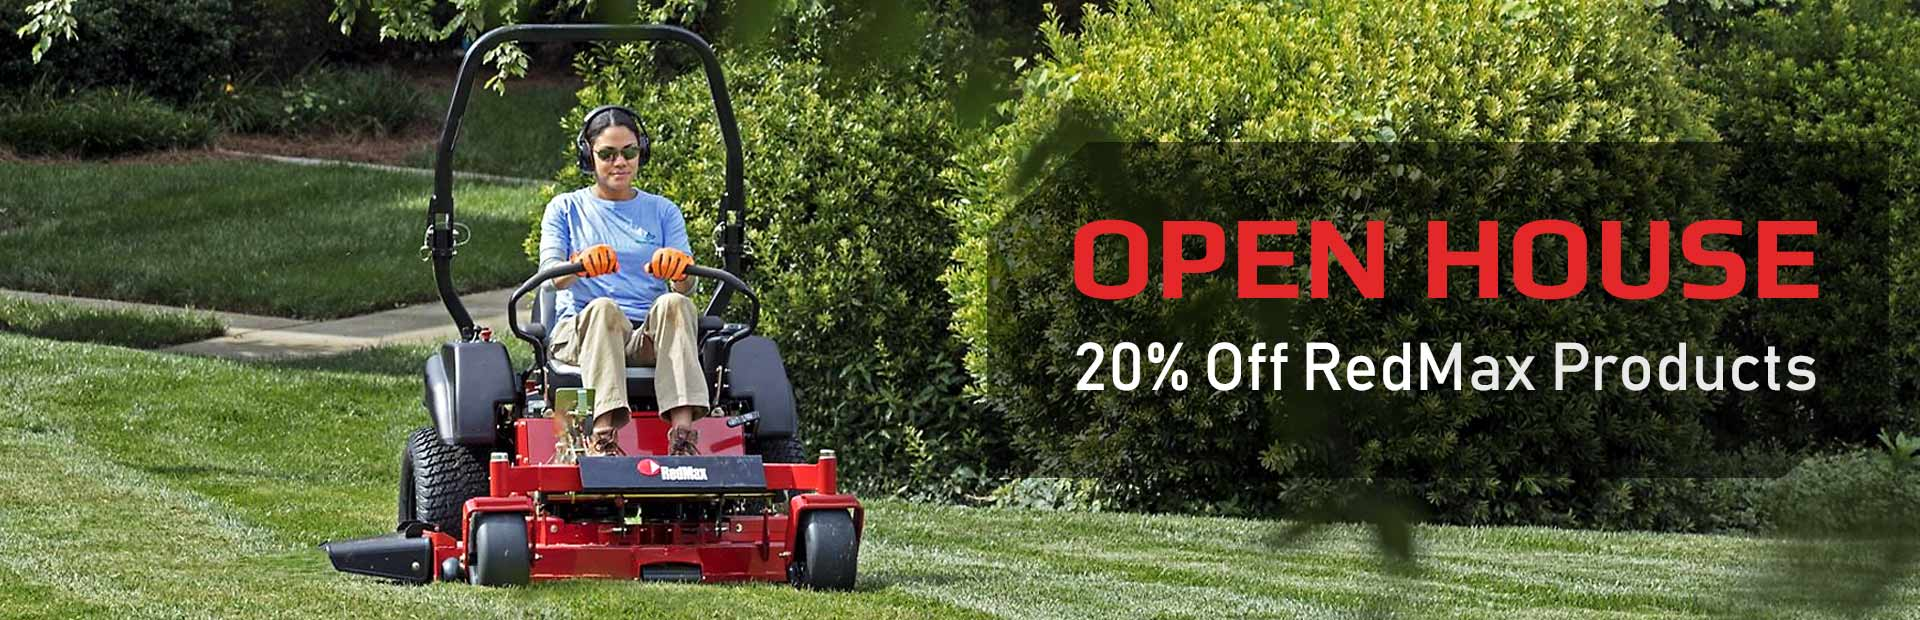 Open house - 20% off RedMax products: Come join us on March 7th & 8th!